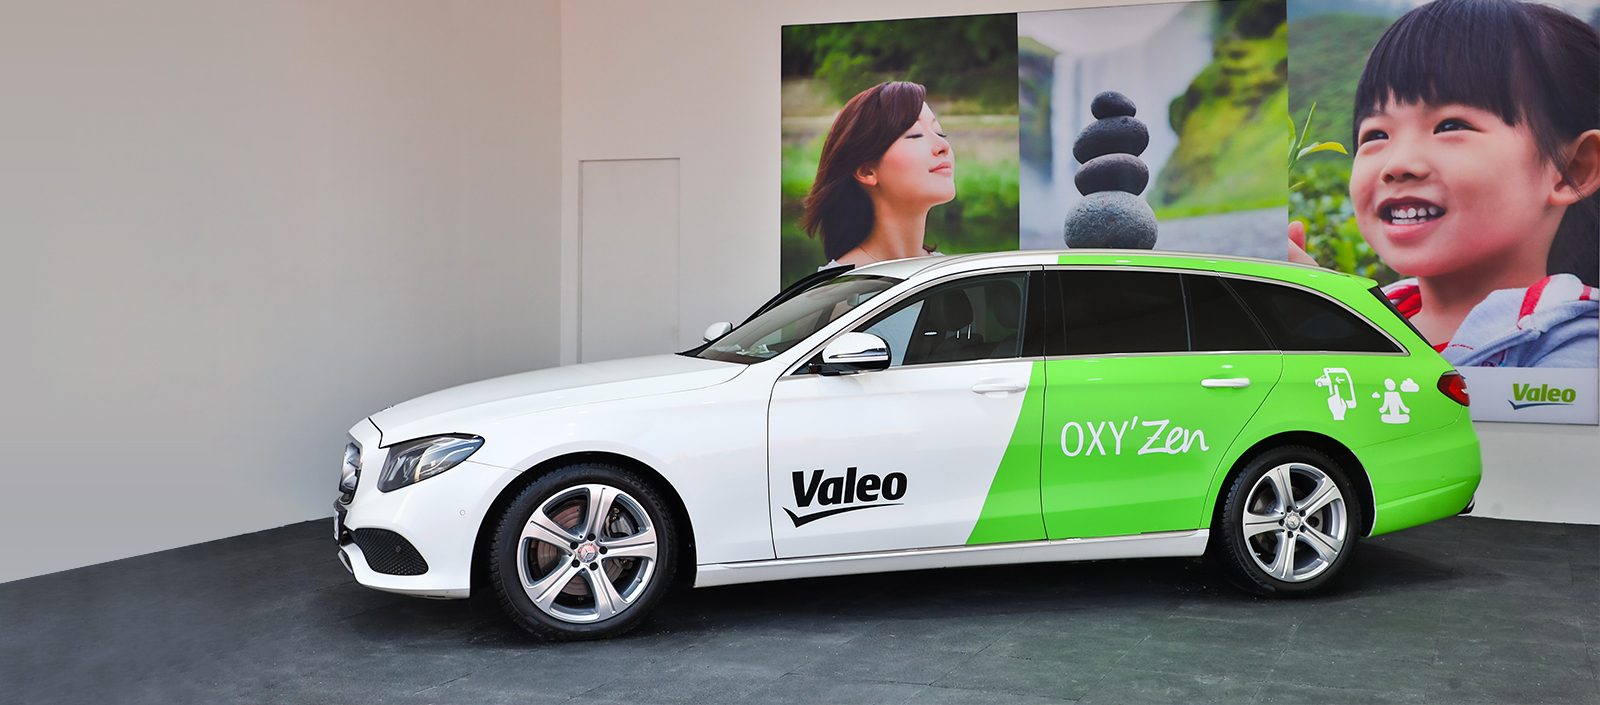 Valeo OXY'Zen at Auto China 2018